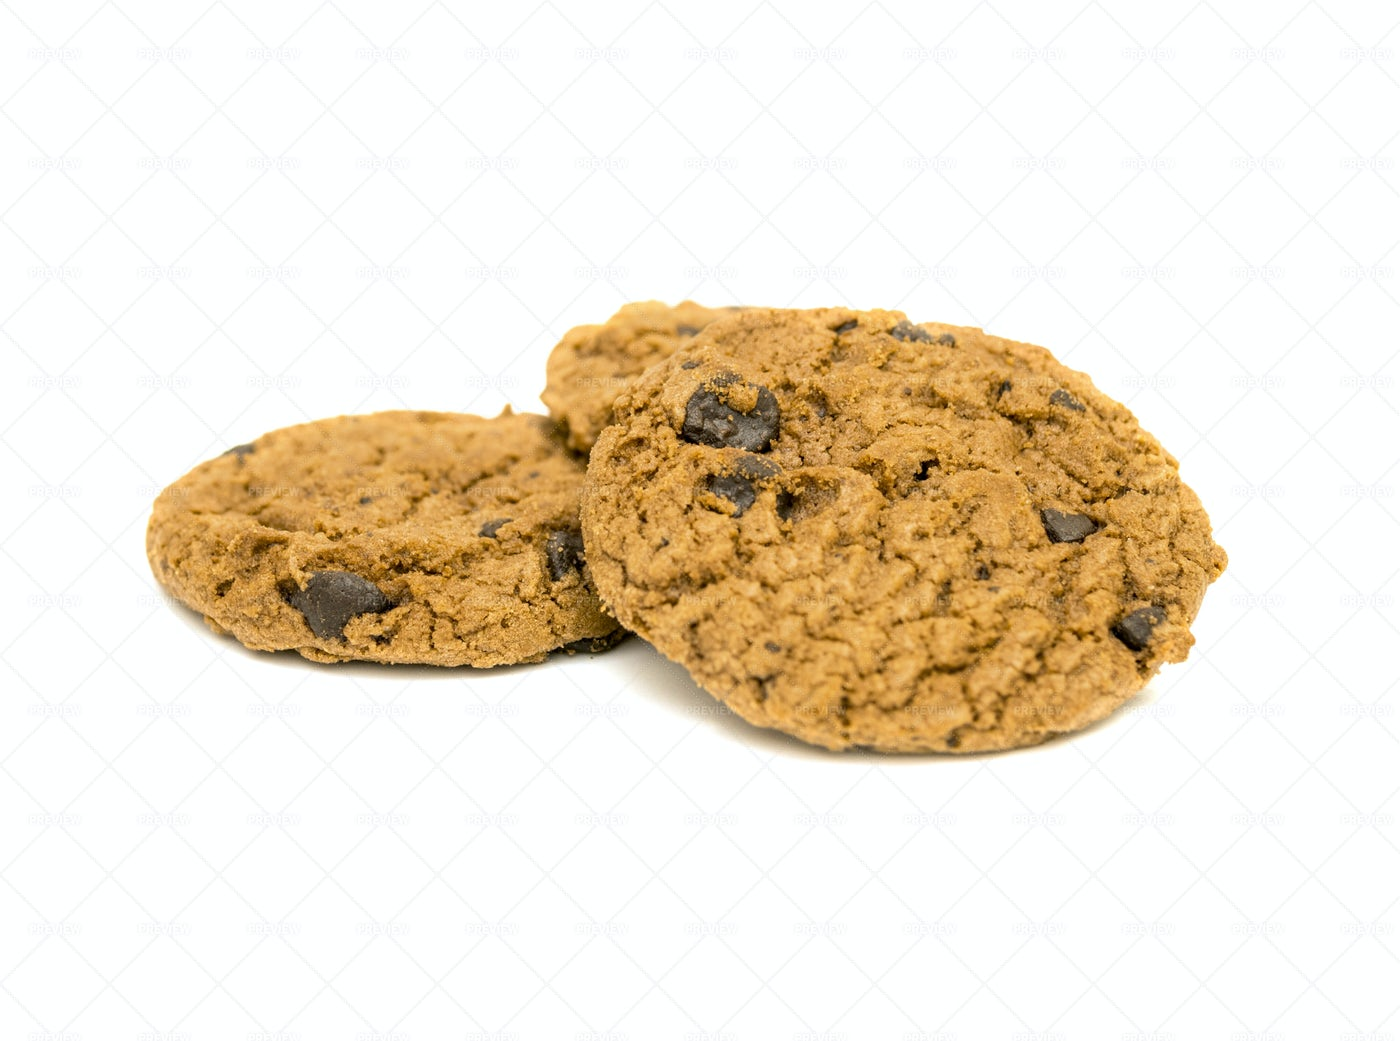 Homemade Cookies Isolated On White: Stock Photos